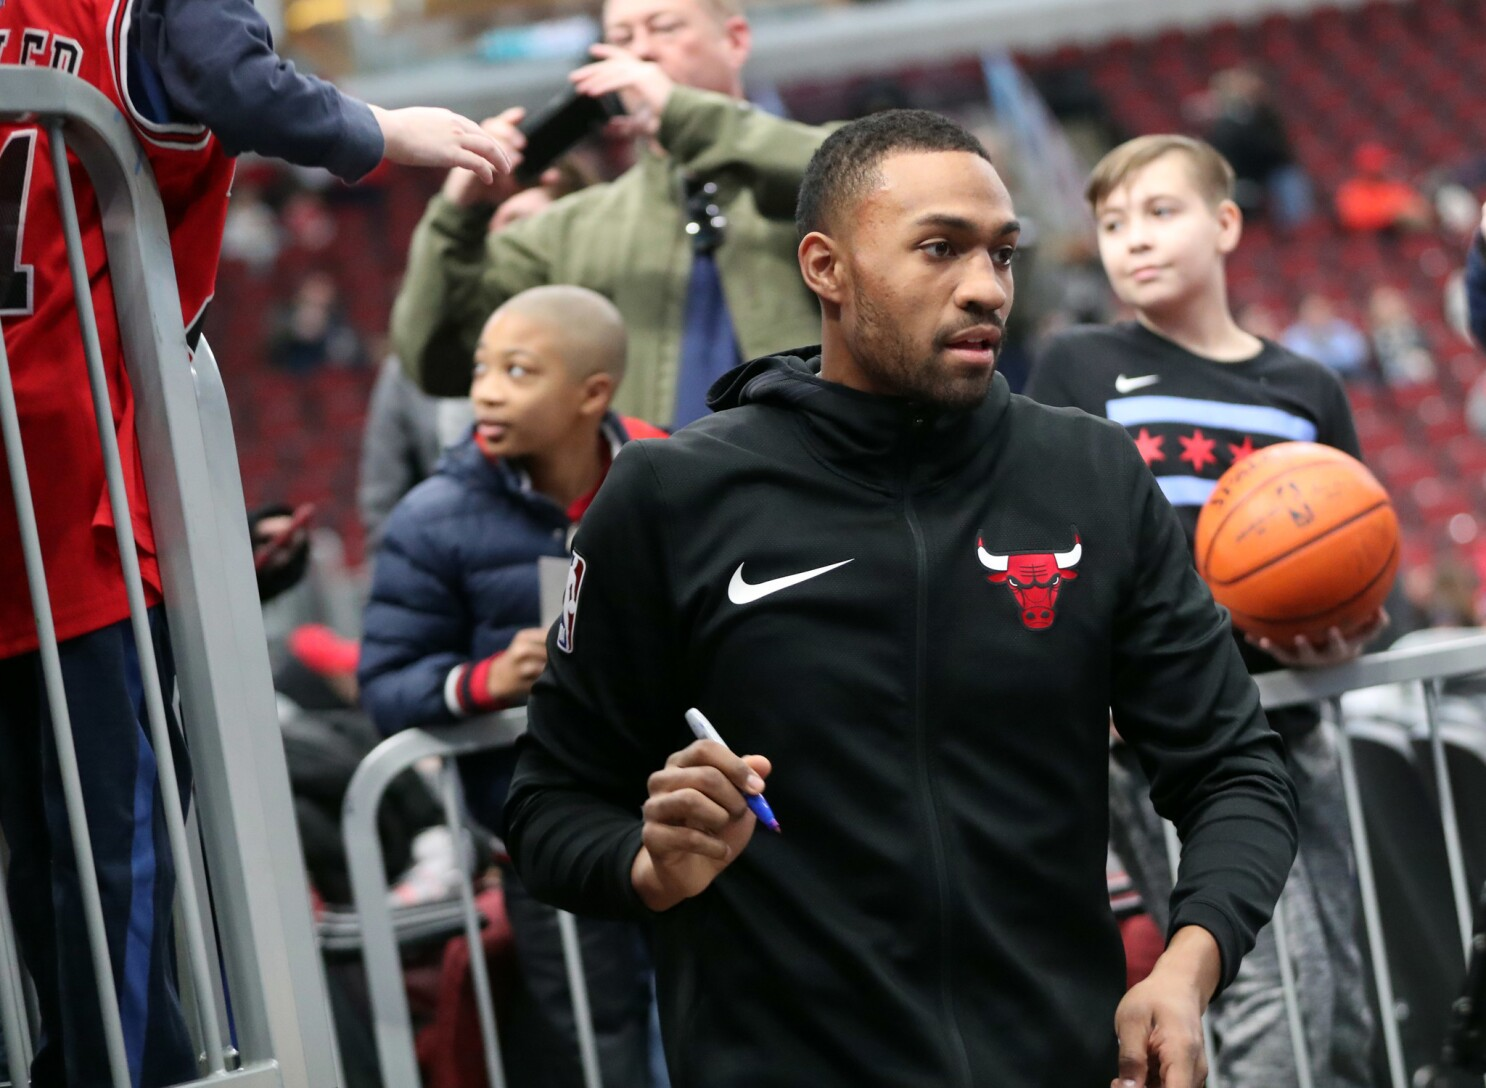 f2d0784acd7 Bulls trade Jabari Parker and Bobby Portis to the Wizards - The San Diego  Union-Tribune